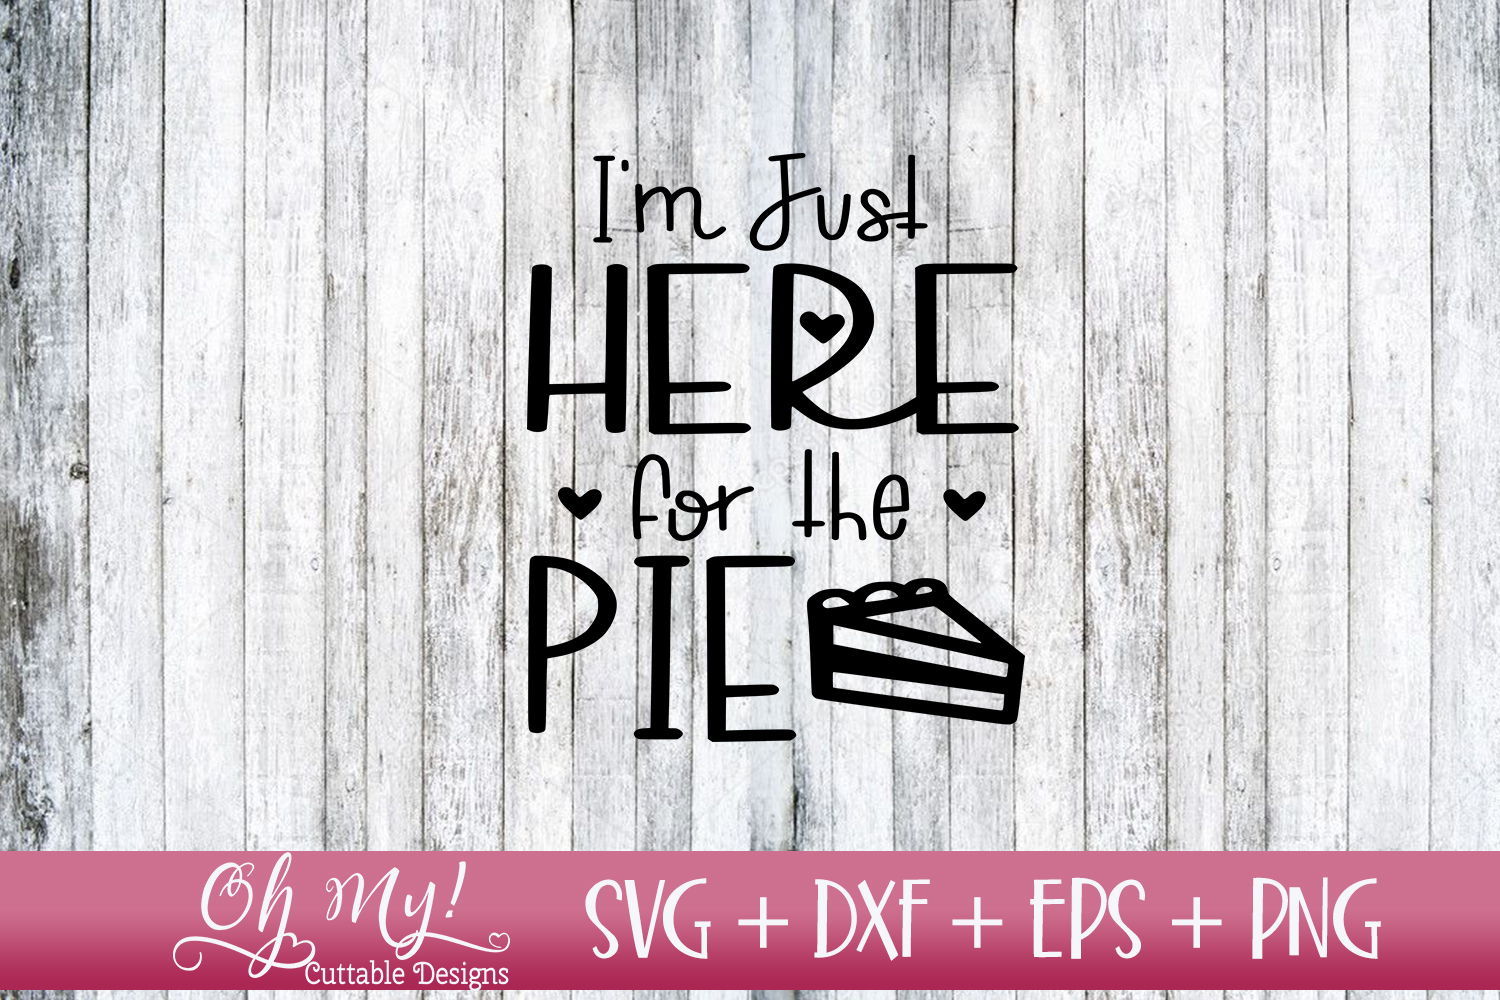 I'm Just Here For The Pie - SVG DXF EPS PNG example image 1